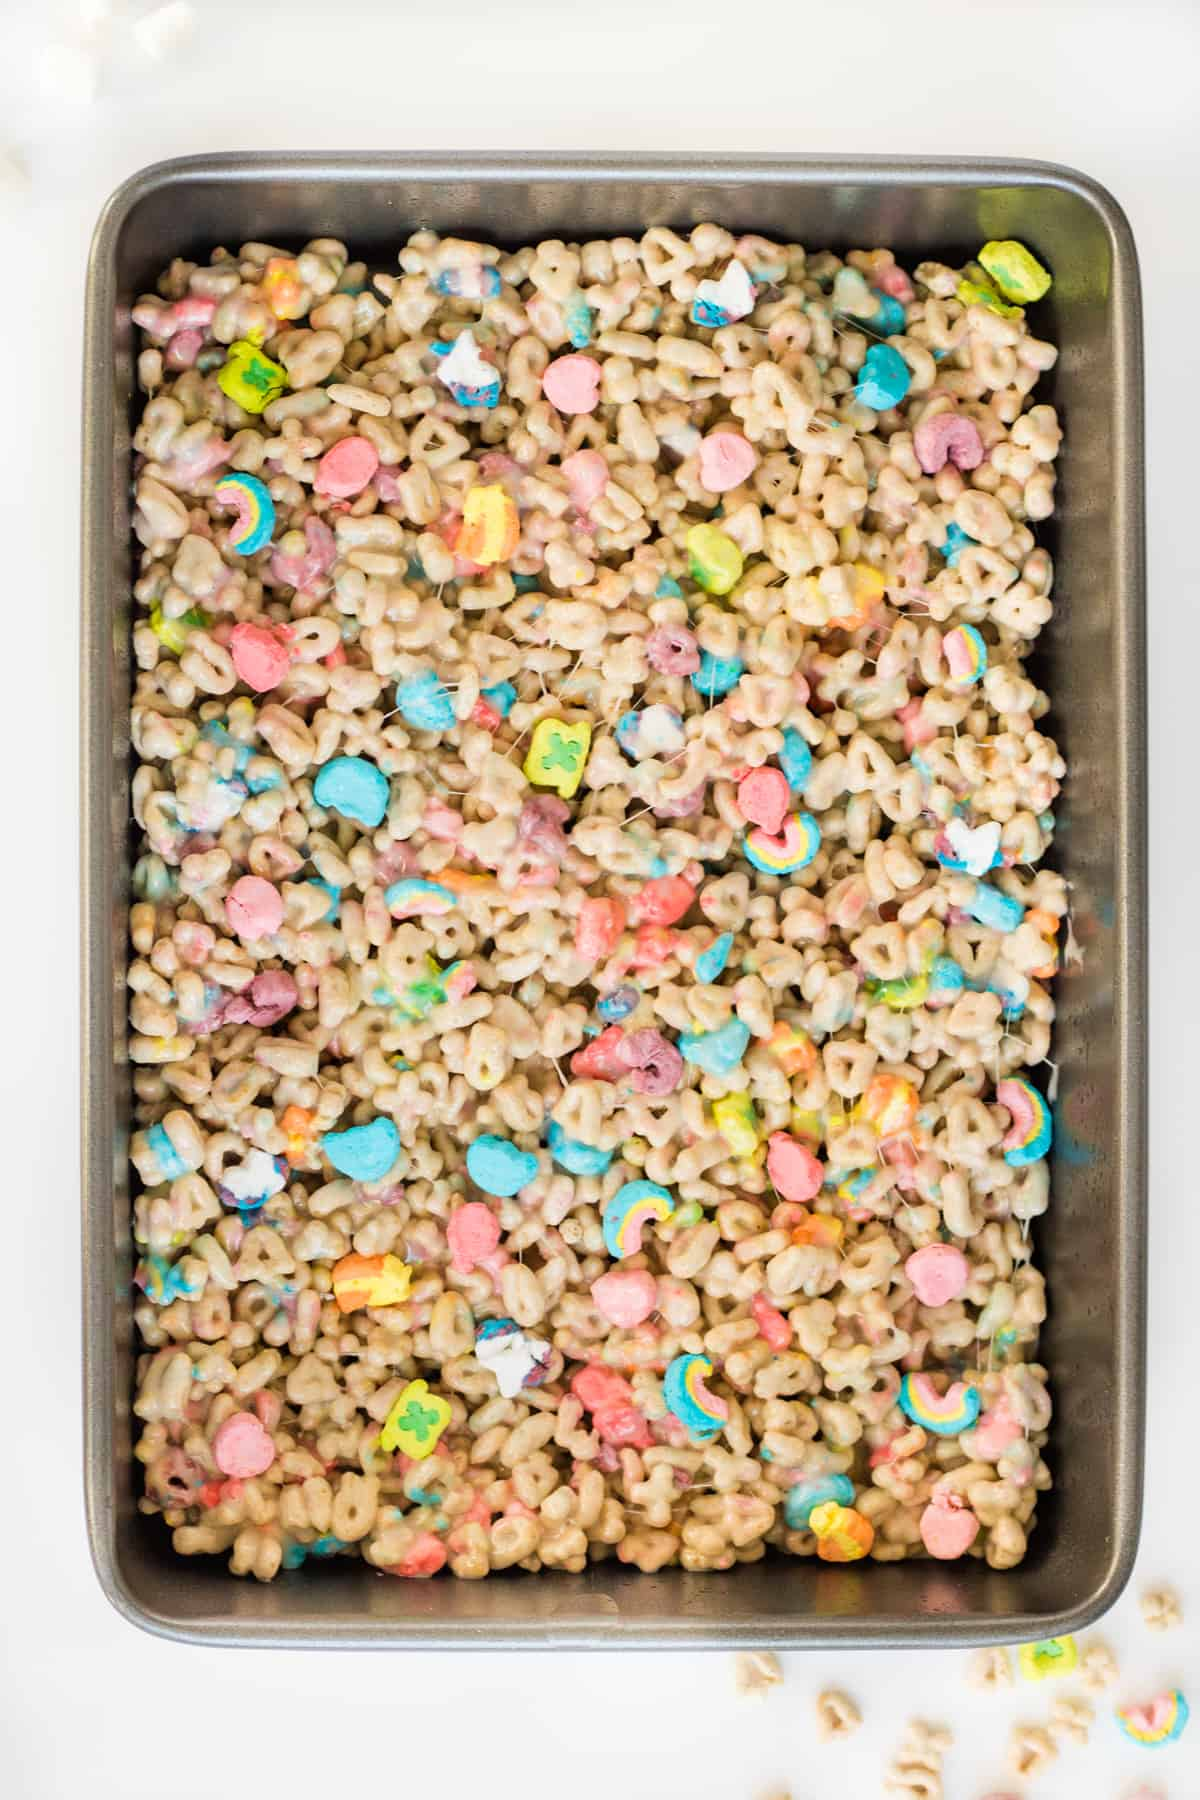 9 x 13 inch baking pan with Lucky Charms treats still uncut in it